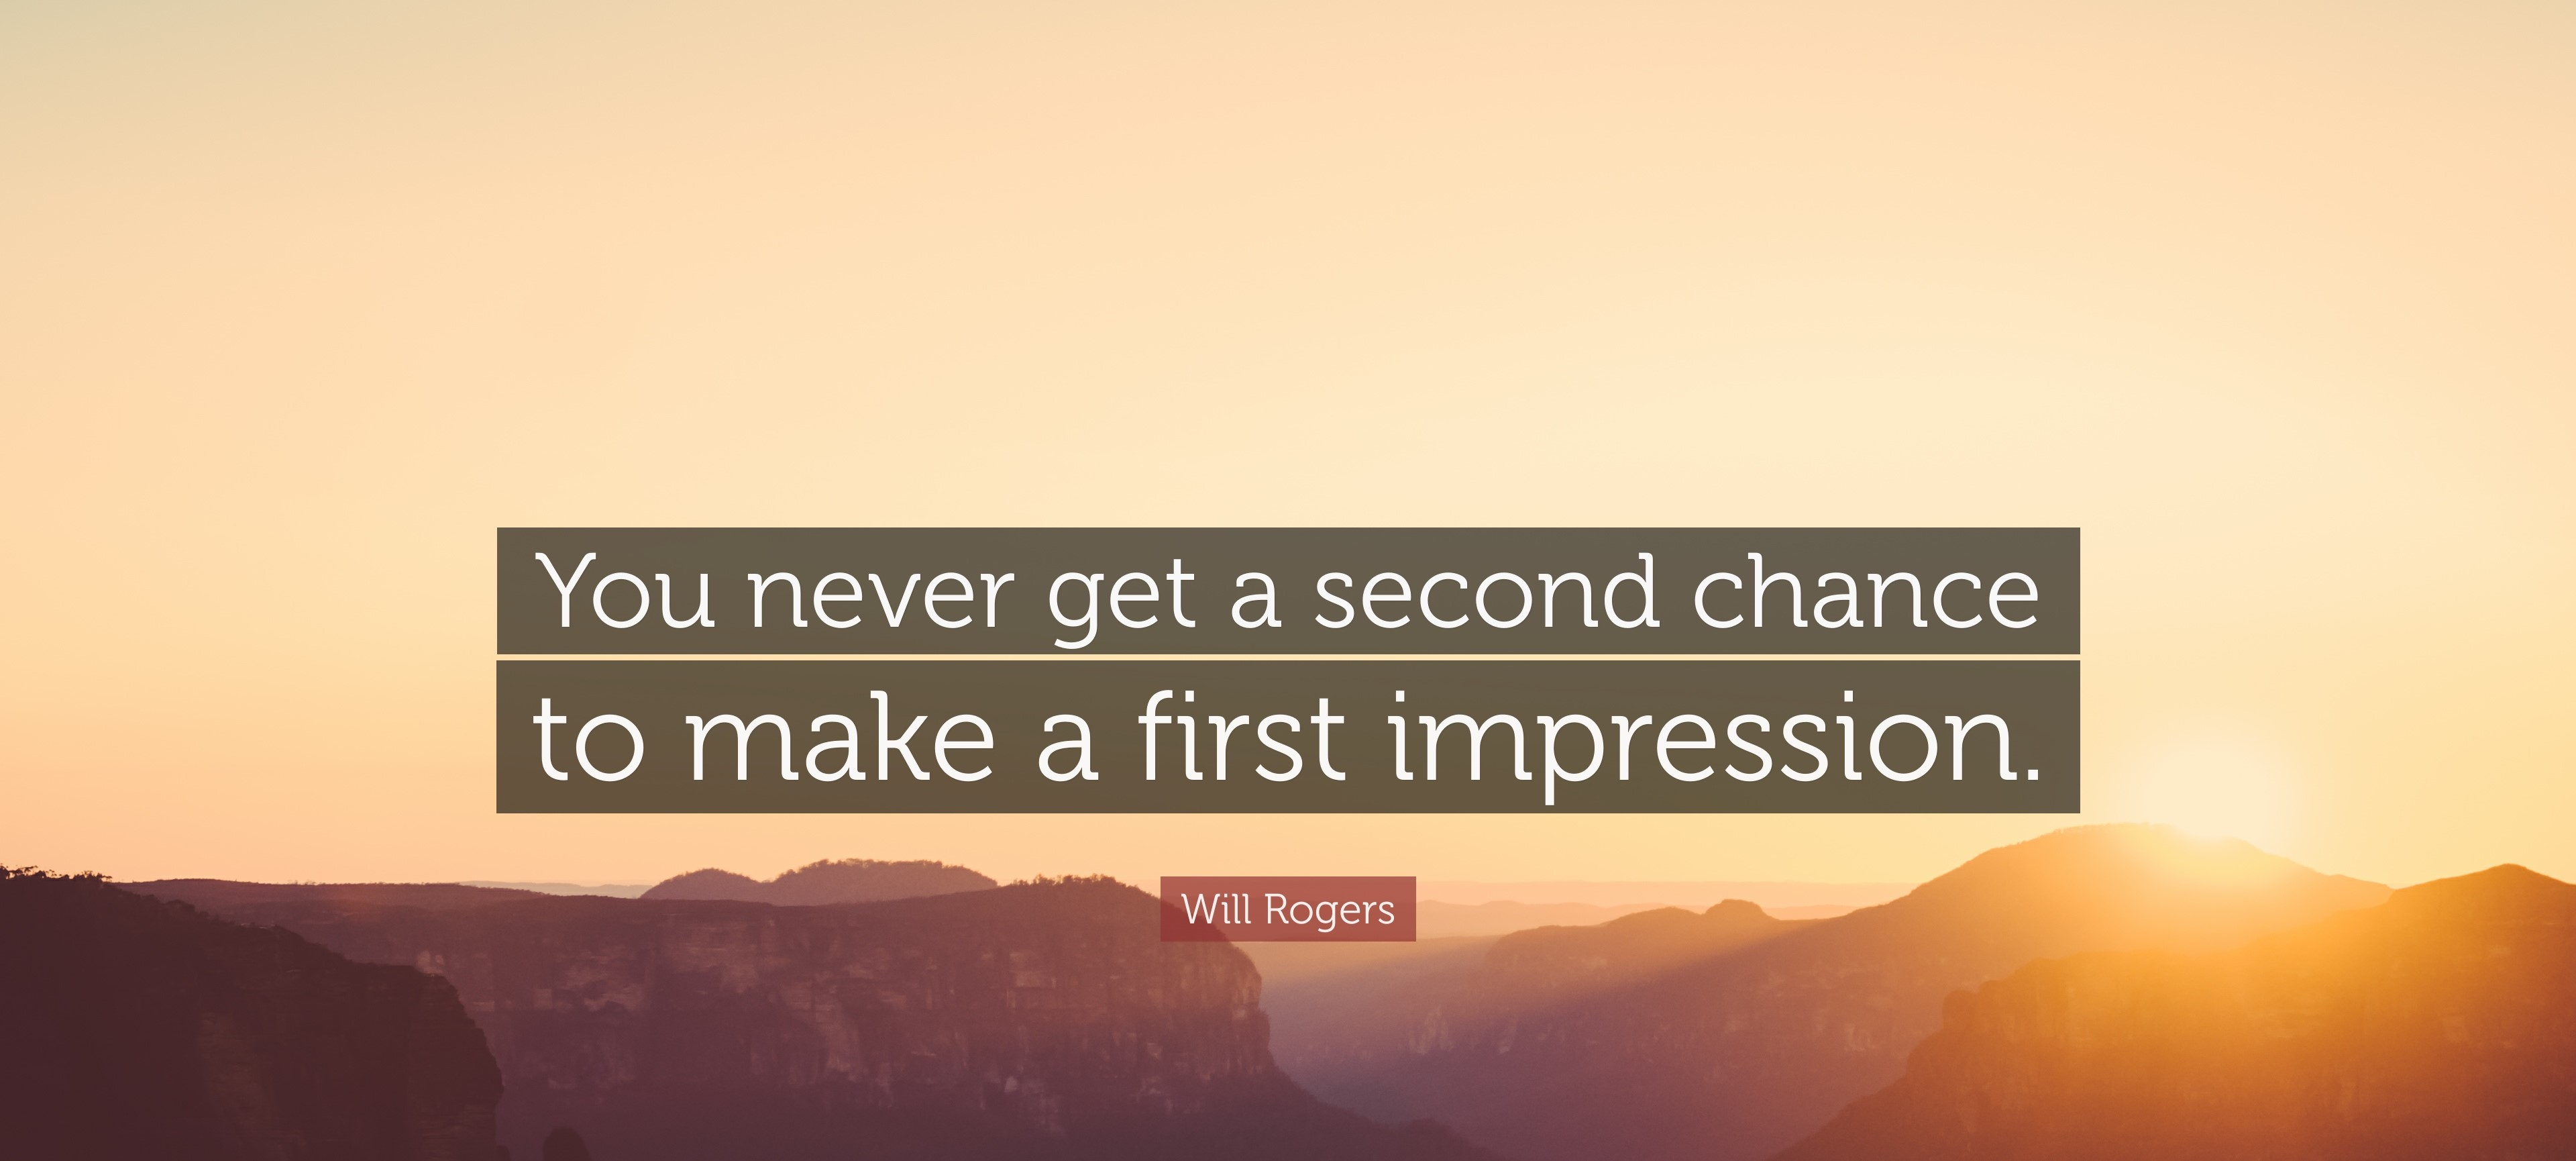 240211-Will-Rogers-Quote-You-never-get-a-second-chance-to-make-a-first